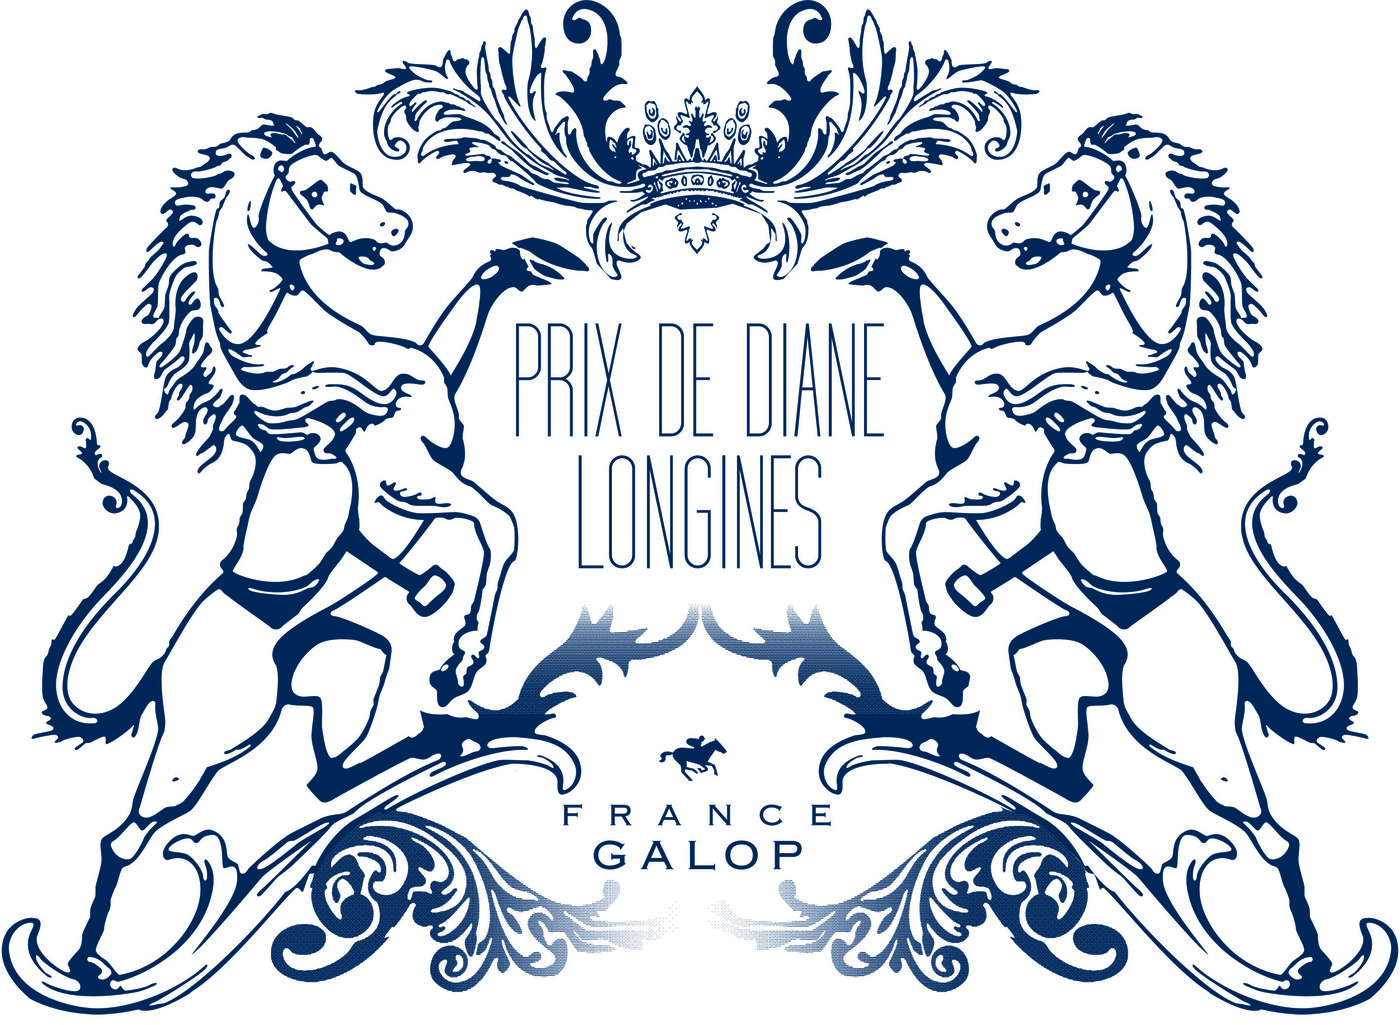 Longines Flat Racing Event: Longines and the Prix de Diane promoting the art of elegance 9